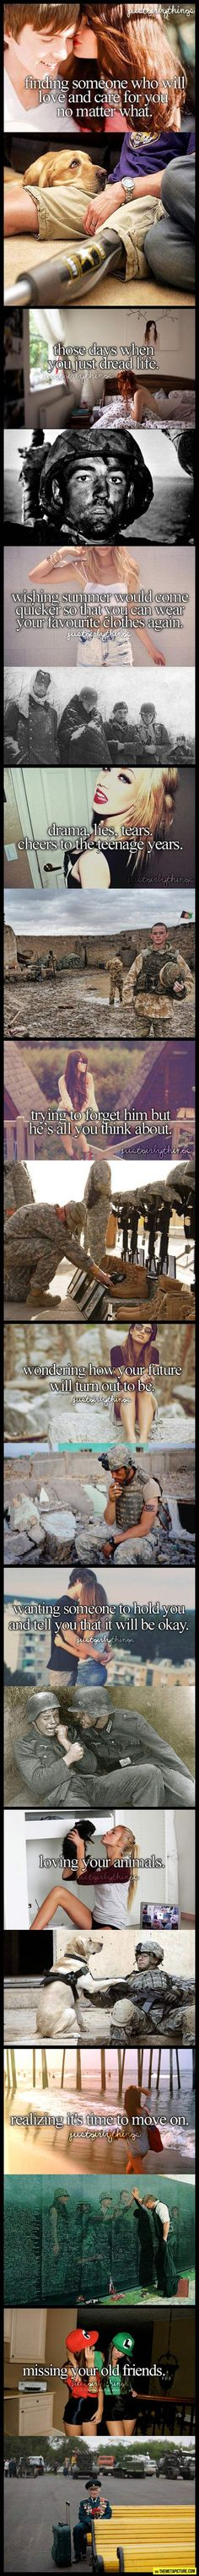 Things in perspective. Glad somebody made this, because all those silly teen posts annoy me. Our troops don't get enough recognition as it is and they have one of the hardest jobs out there and most do it without complaining. Thanks to the soldiers, sailors, marines, and air men!